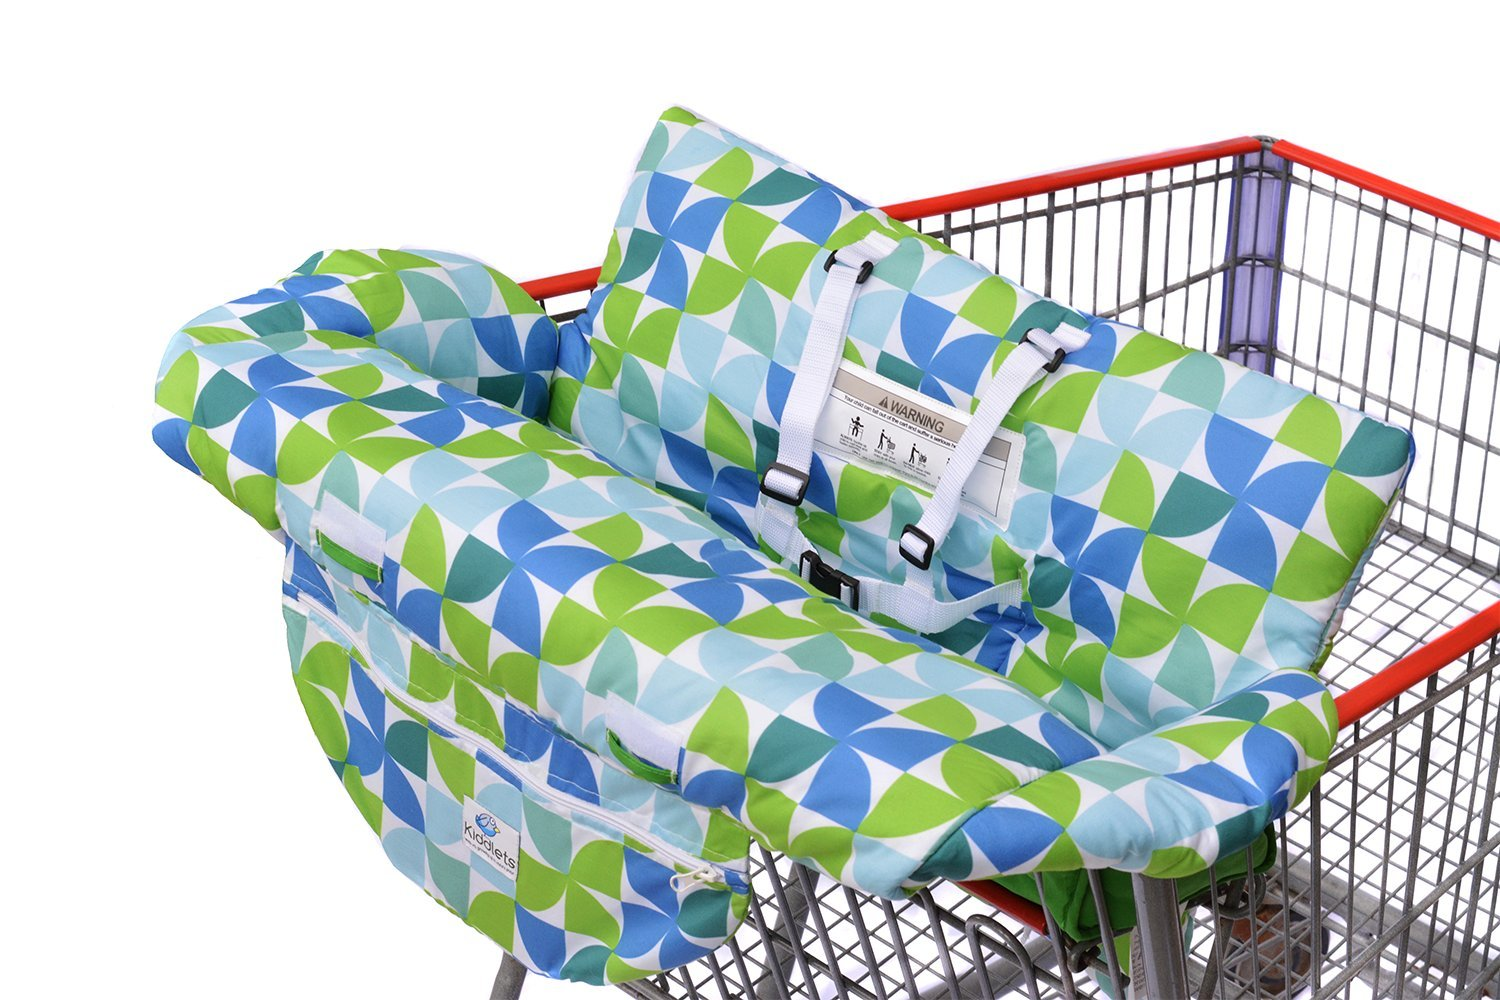 Costco Sized Grocery Shopping Cart Baby Seat Cover Restaurant High Chair Insert Cushion Holder